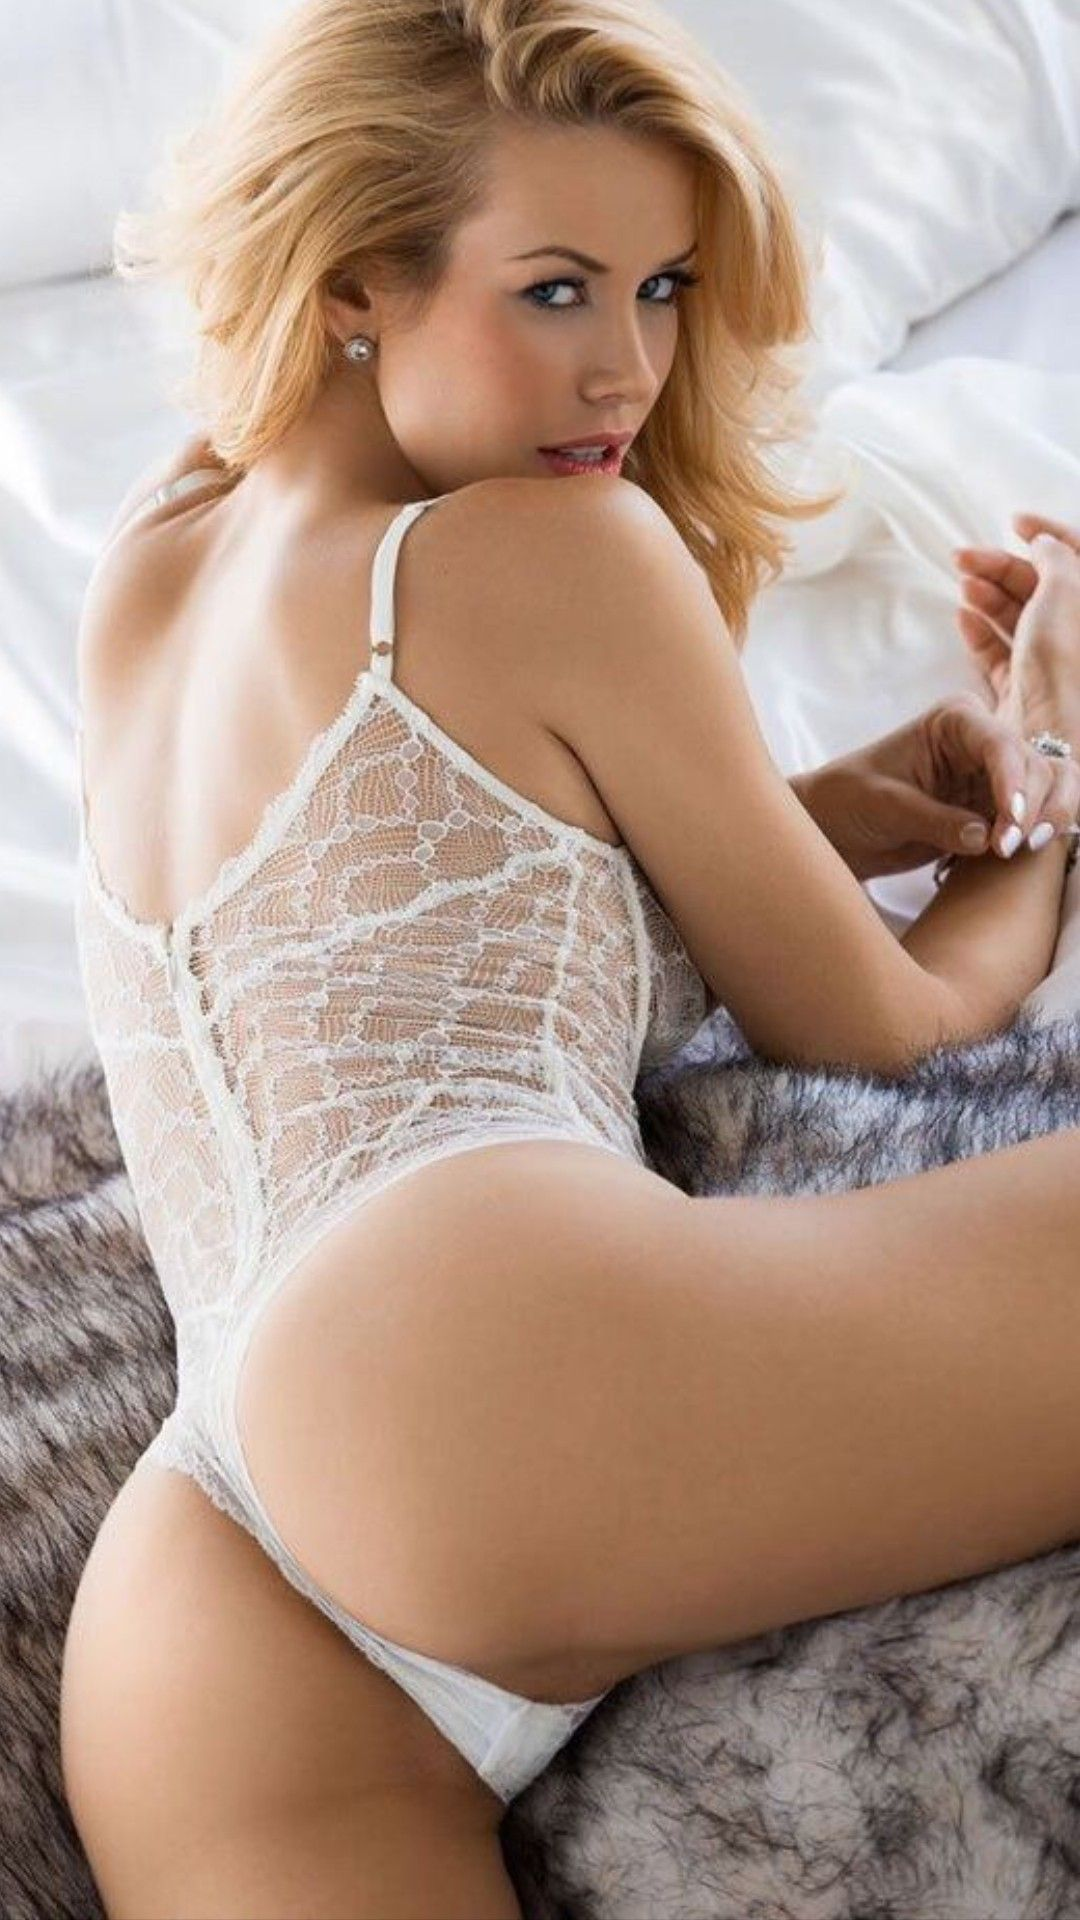 naked women s sexy lingerie